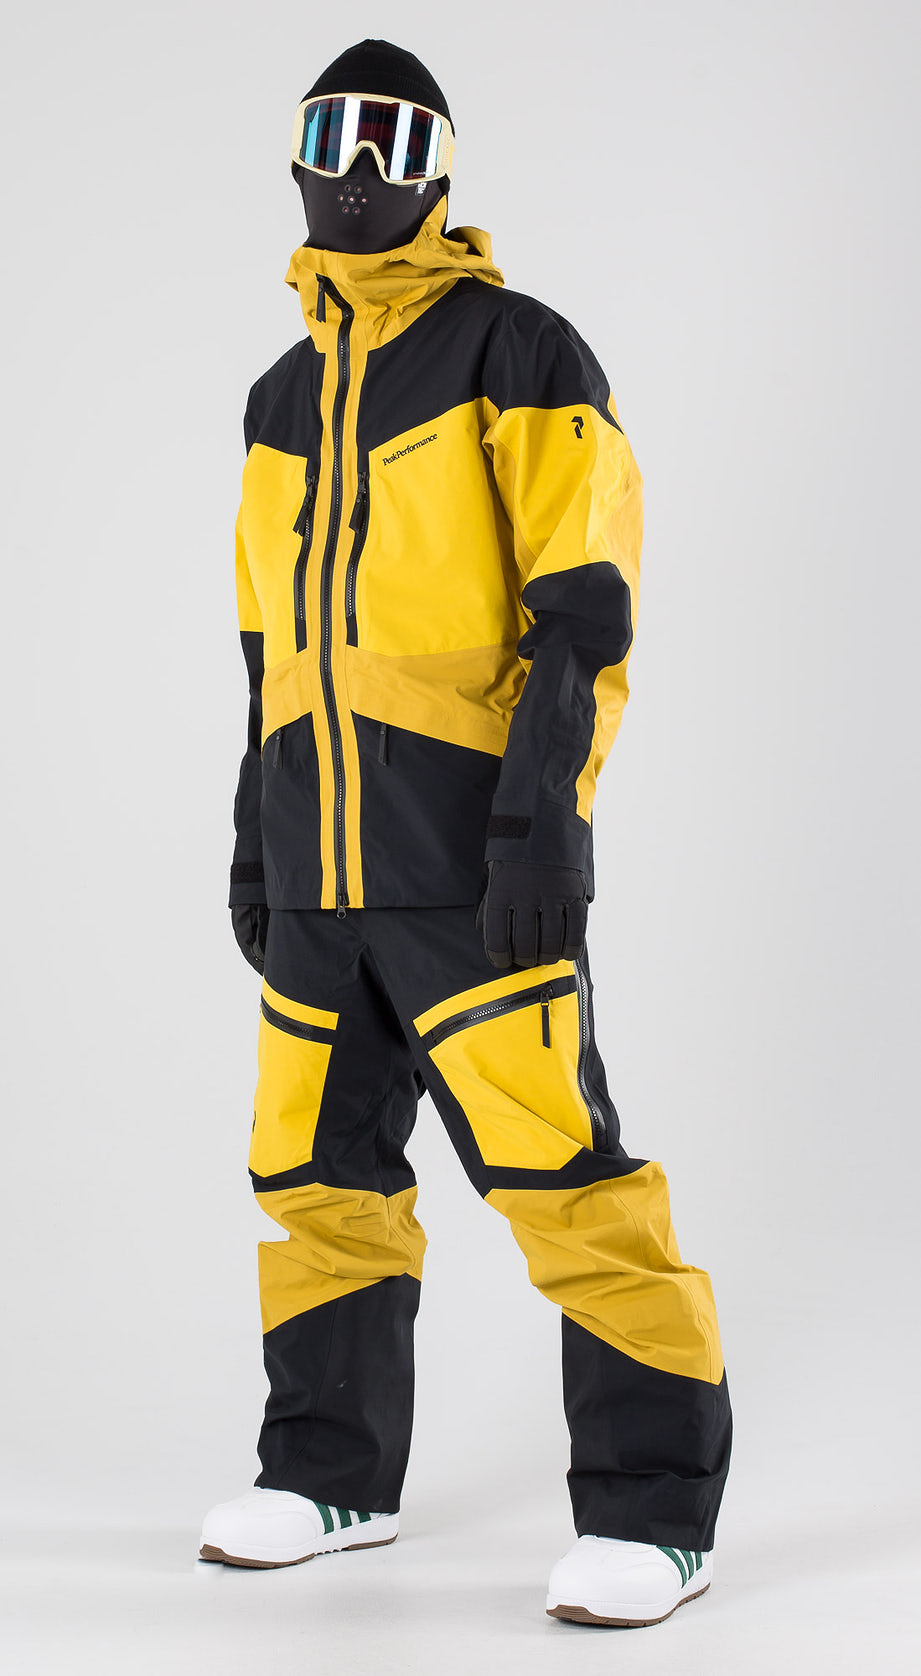 Peak Performance Gravity Yellow Flow Snowboardkleidung Multi